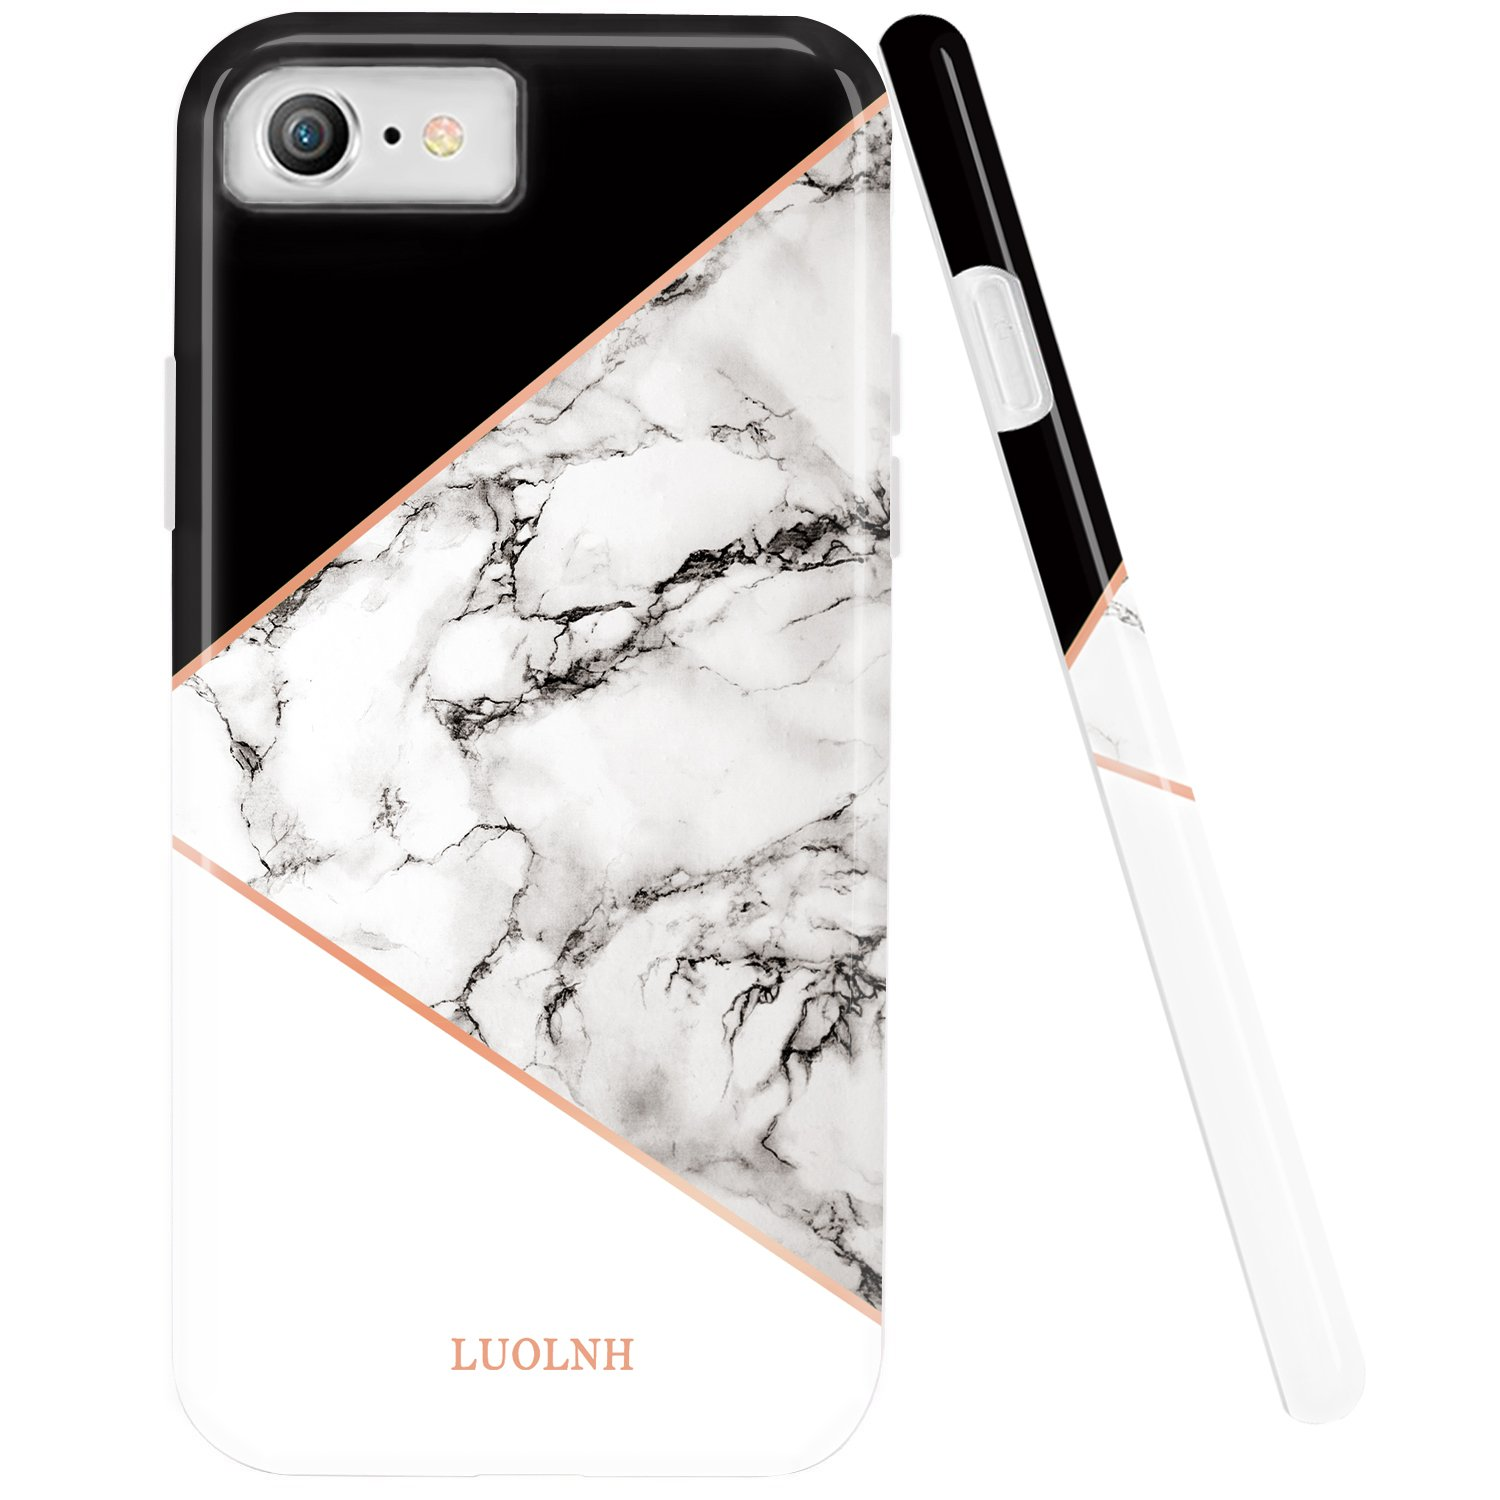 iphone 8 case luolnh